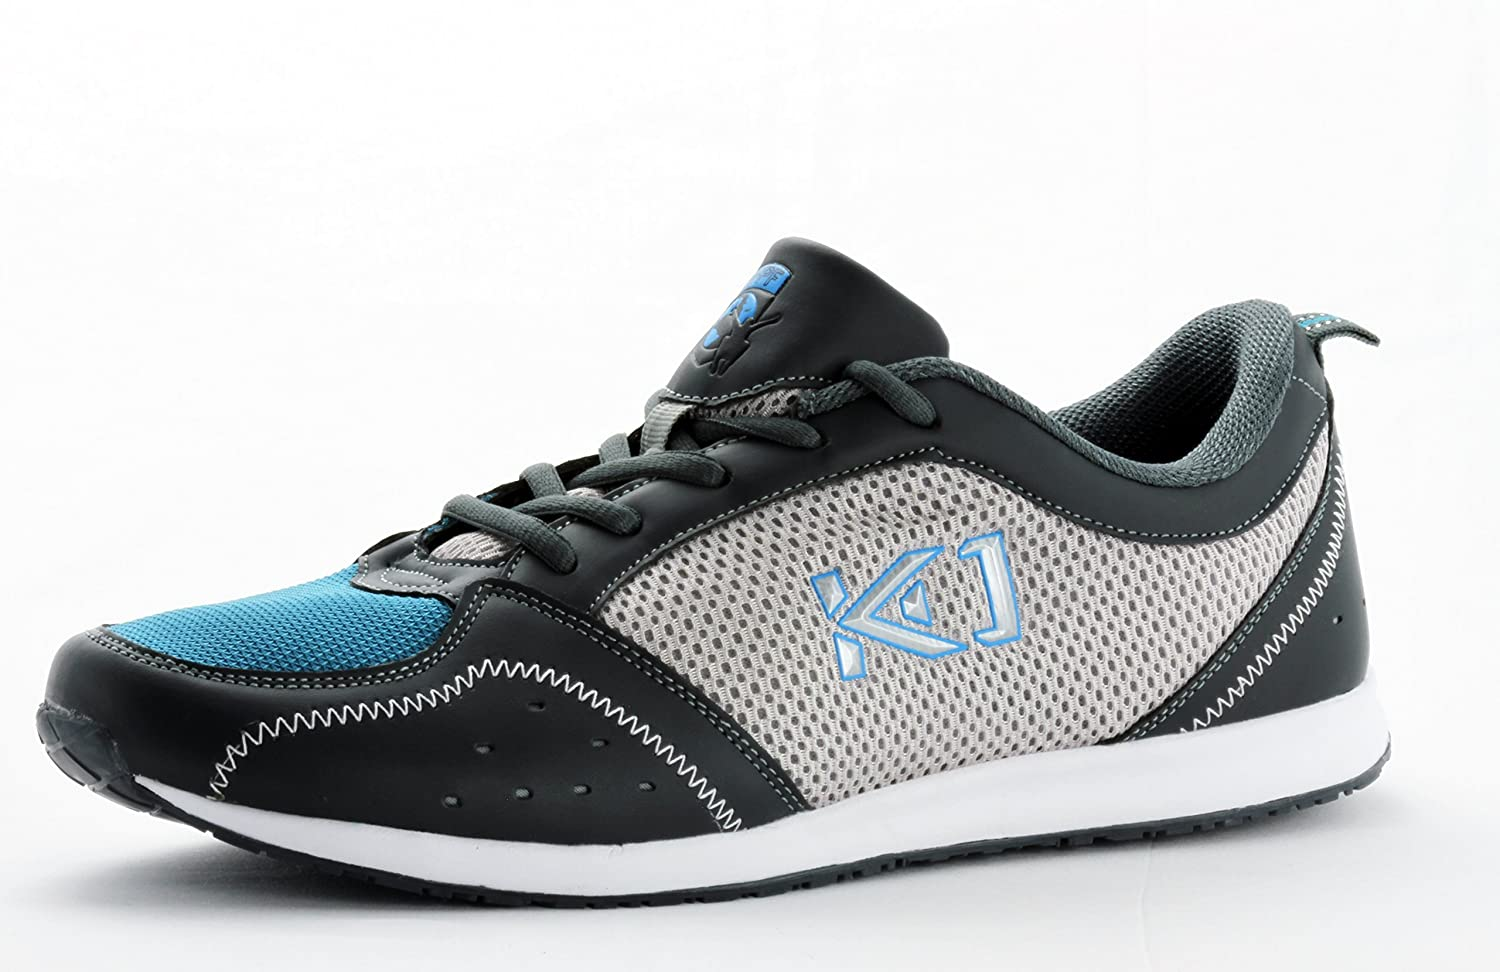 Know Obstacles Gen 3 Parkour and Freerunning Shoes B01LZV6GT3 36 M EU